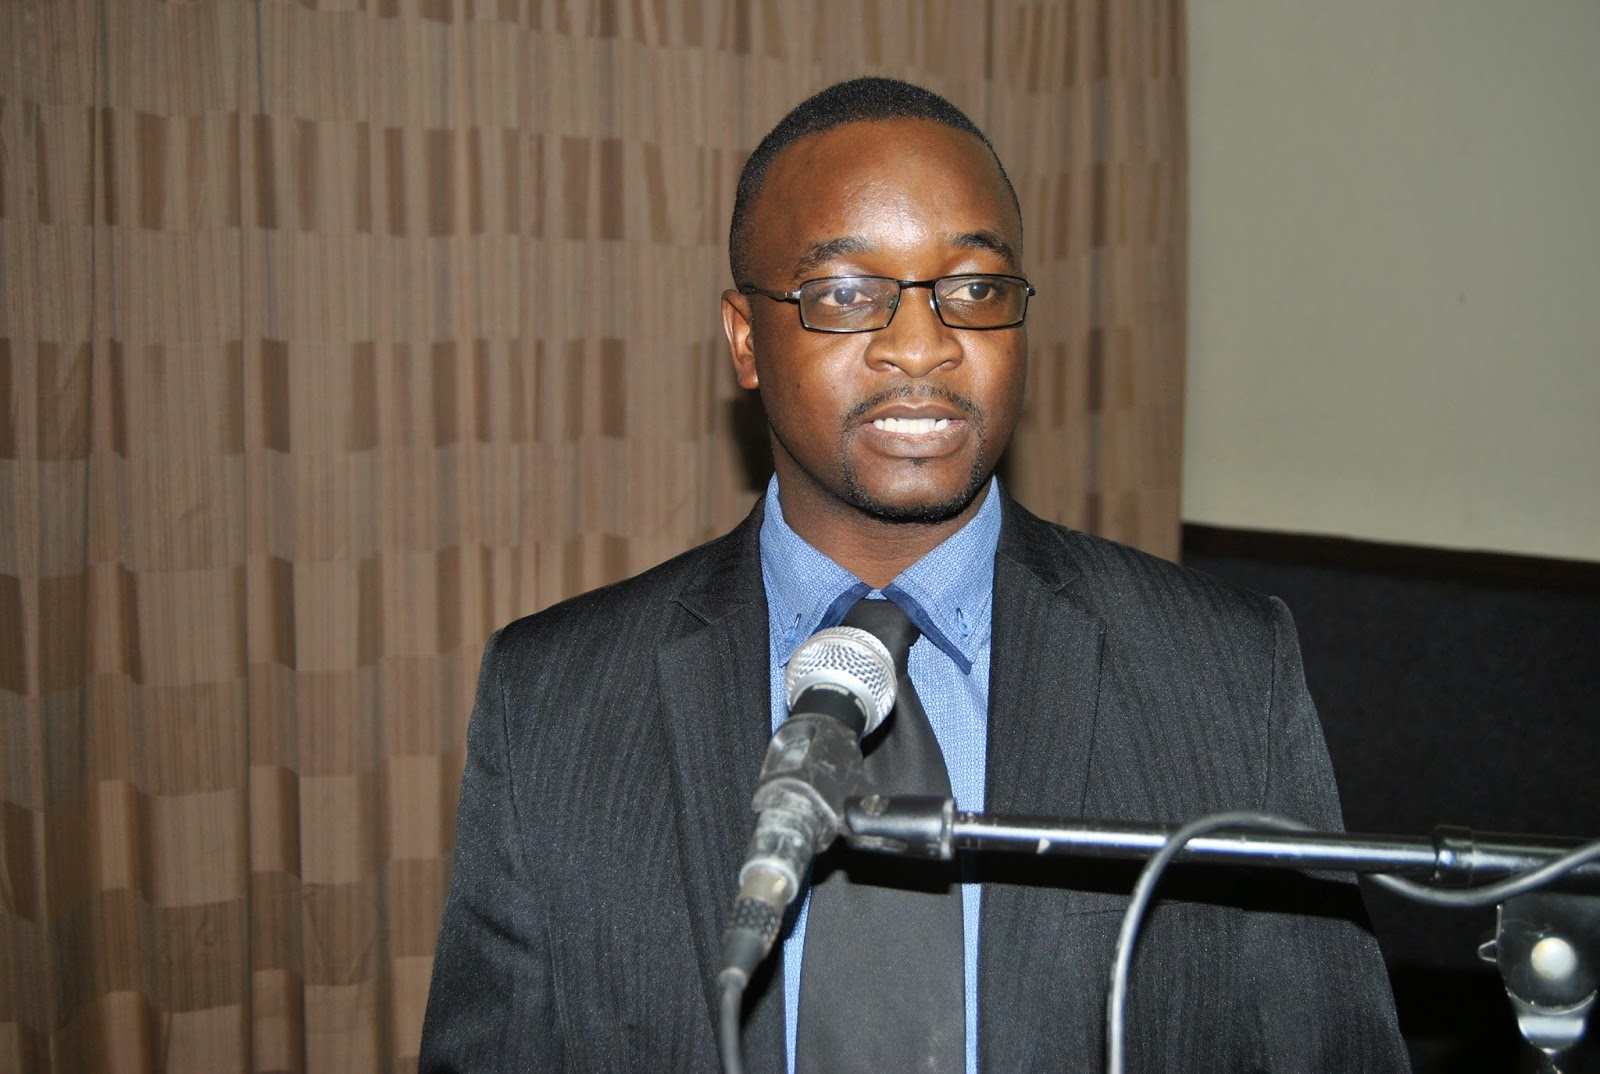 Malawi government sponsoring unsafe abortions